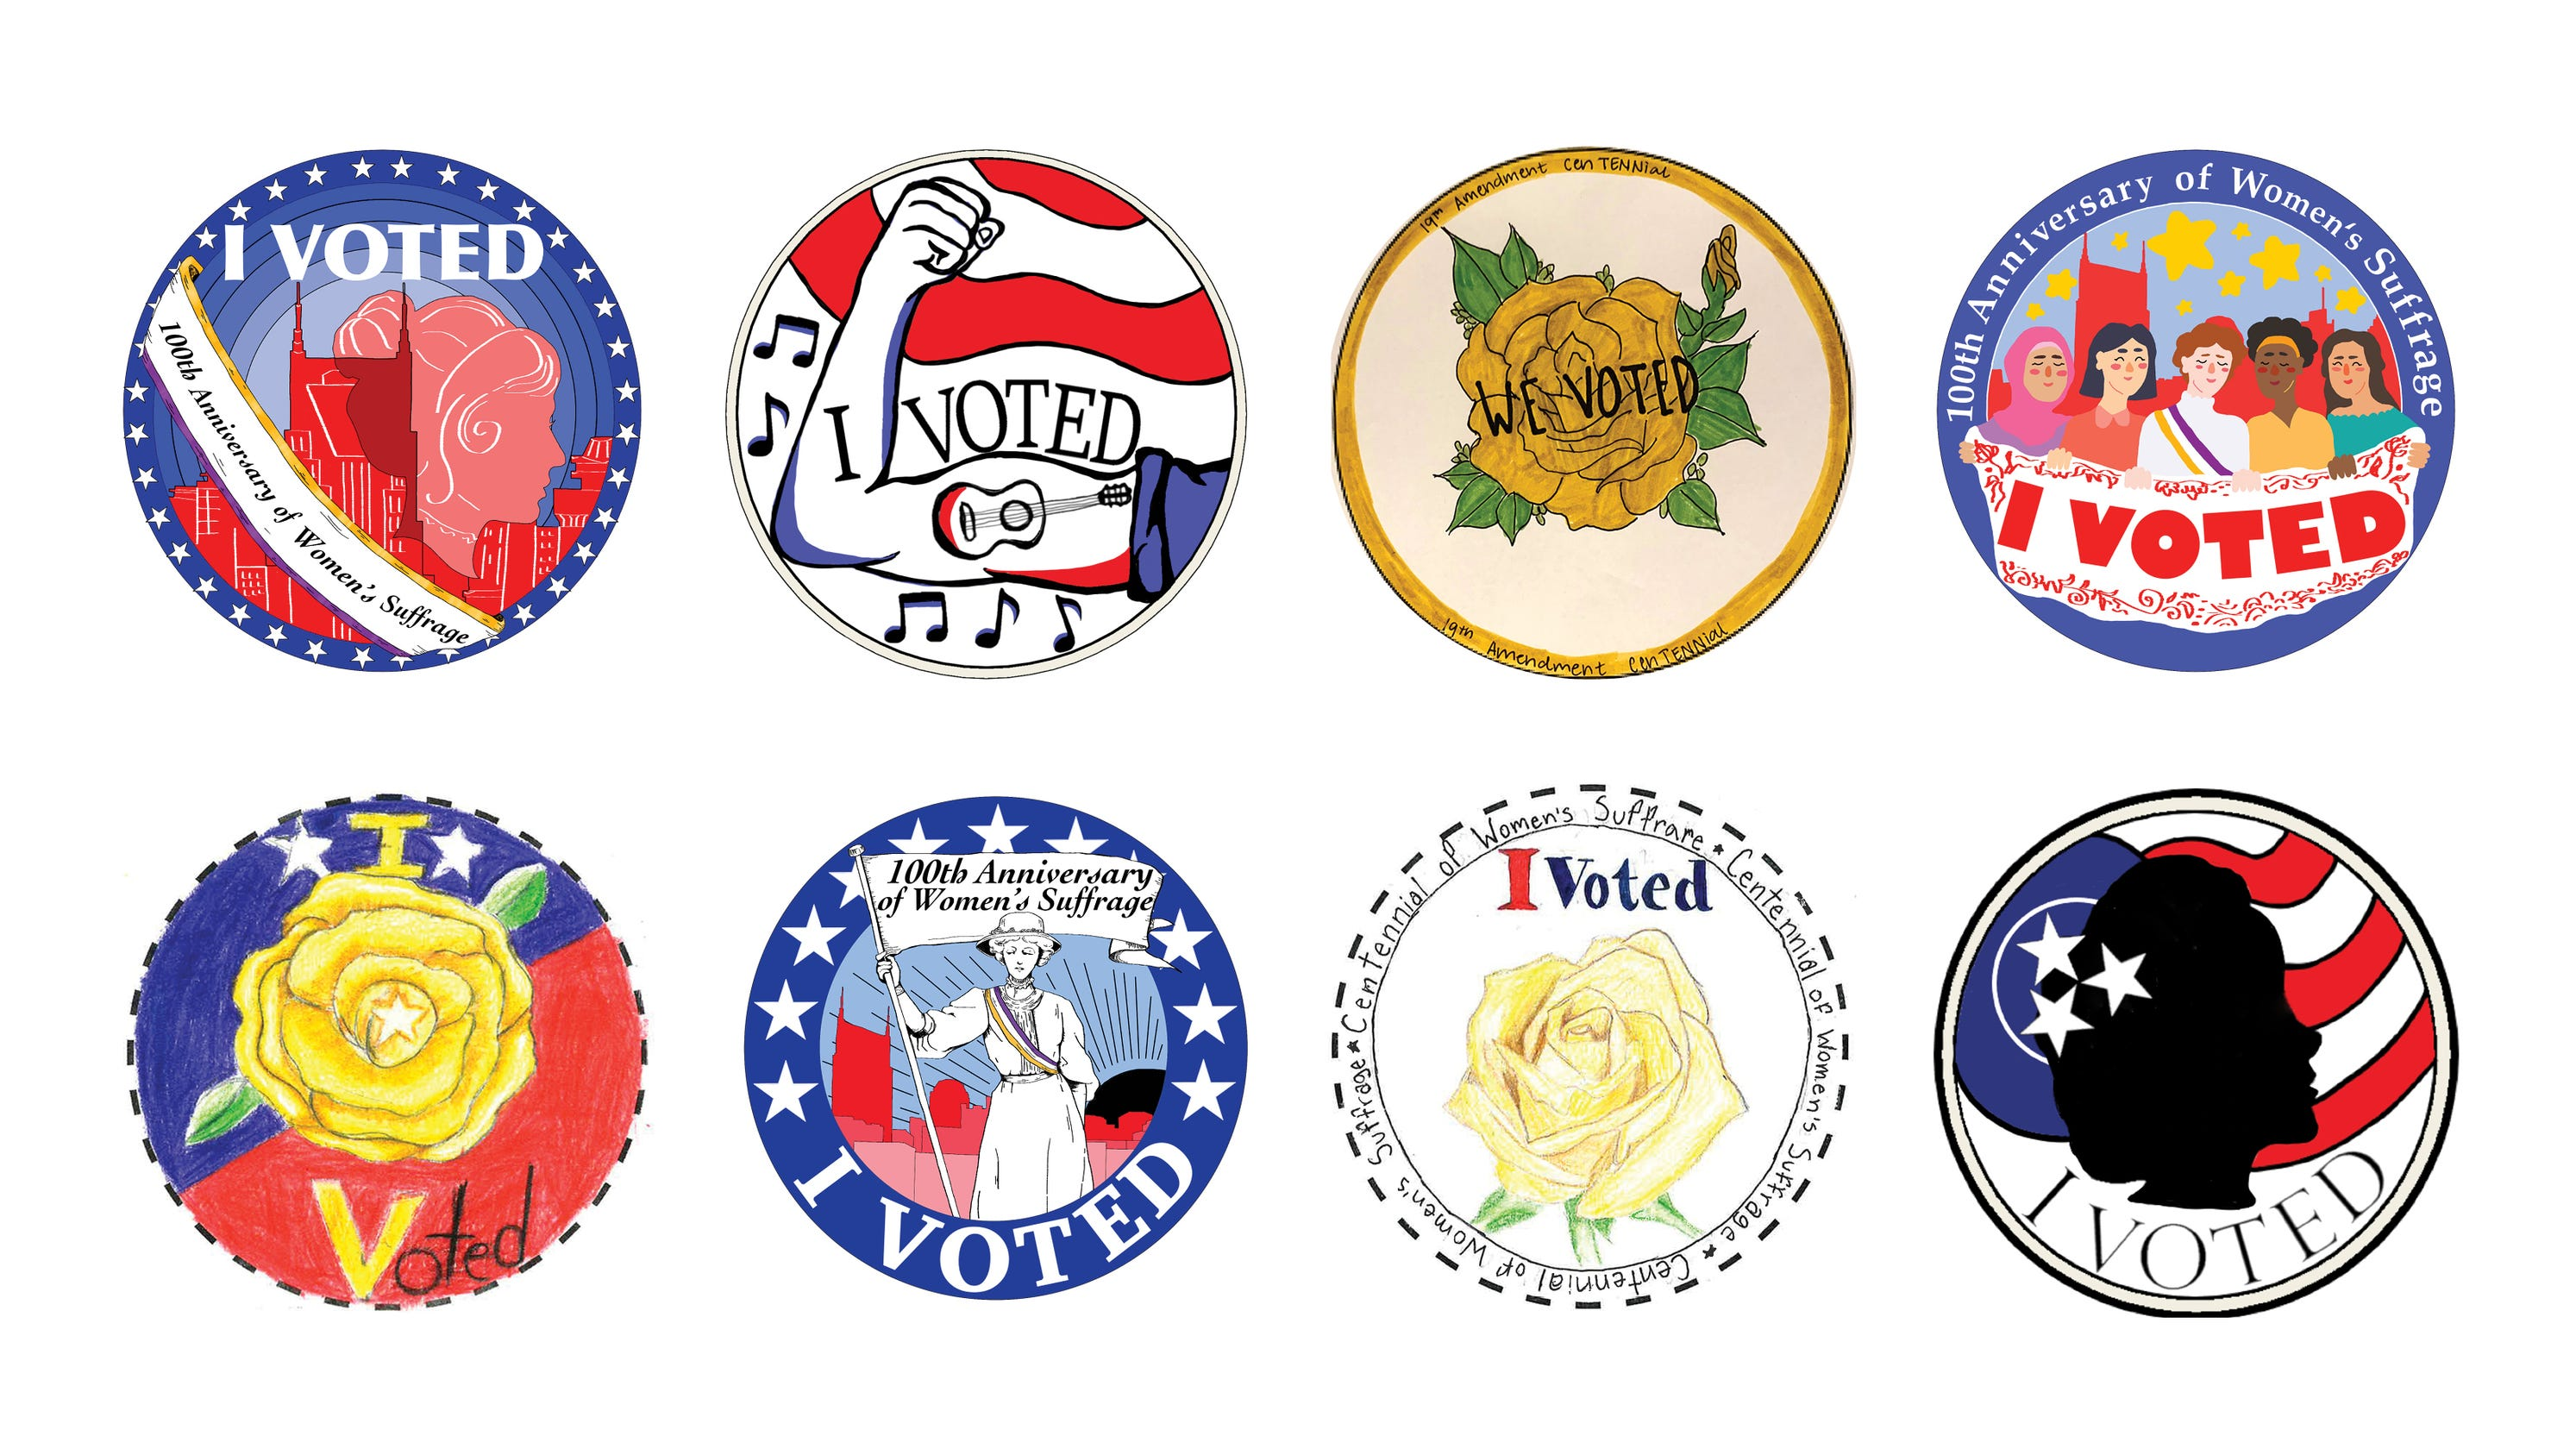 Nashville's new 'I Voted' sticker — designed by student artists to honor women's suffrage — needs your vote